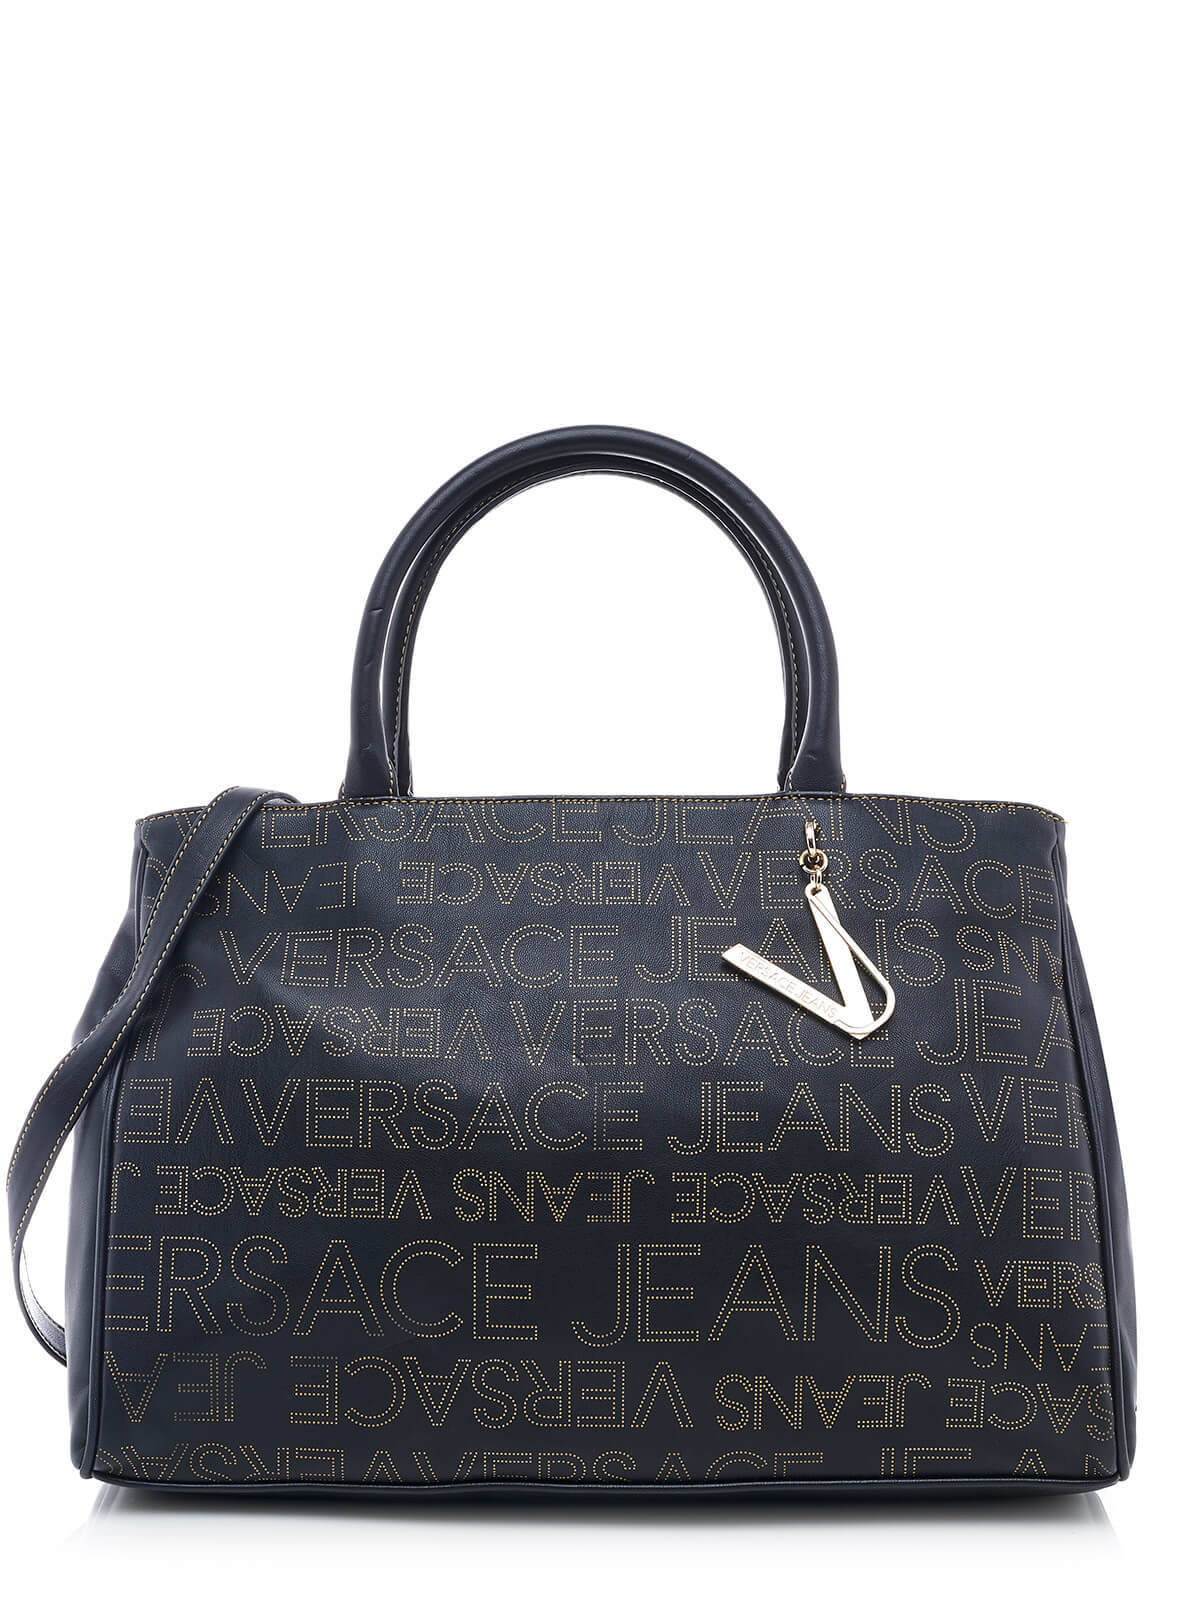 dd080ed46b Versace Jeans Couture bag